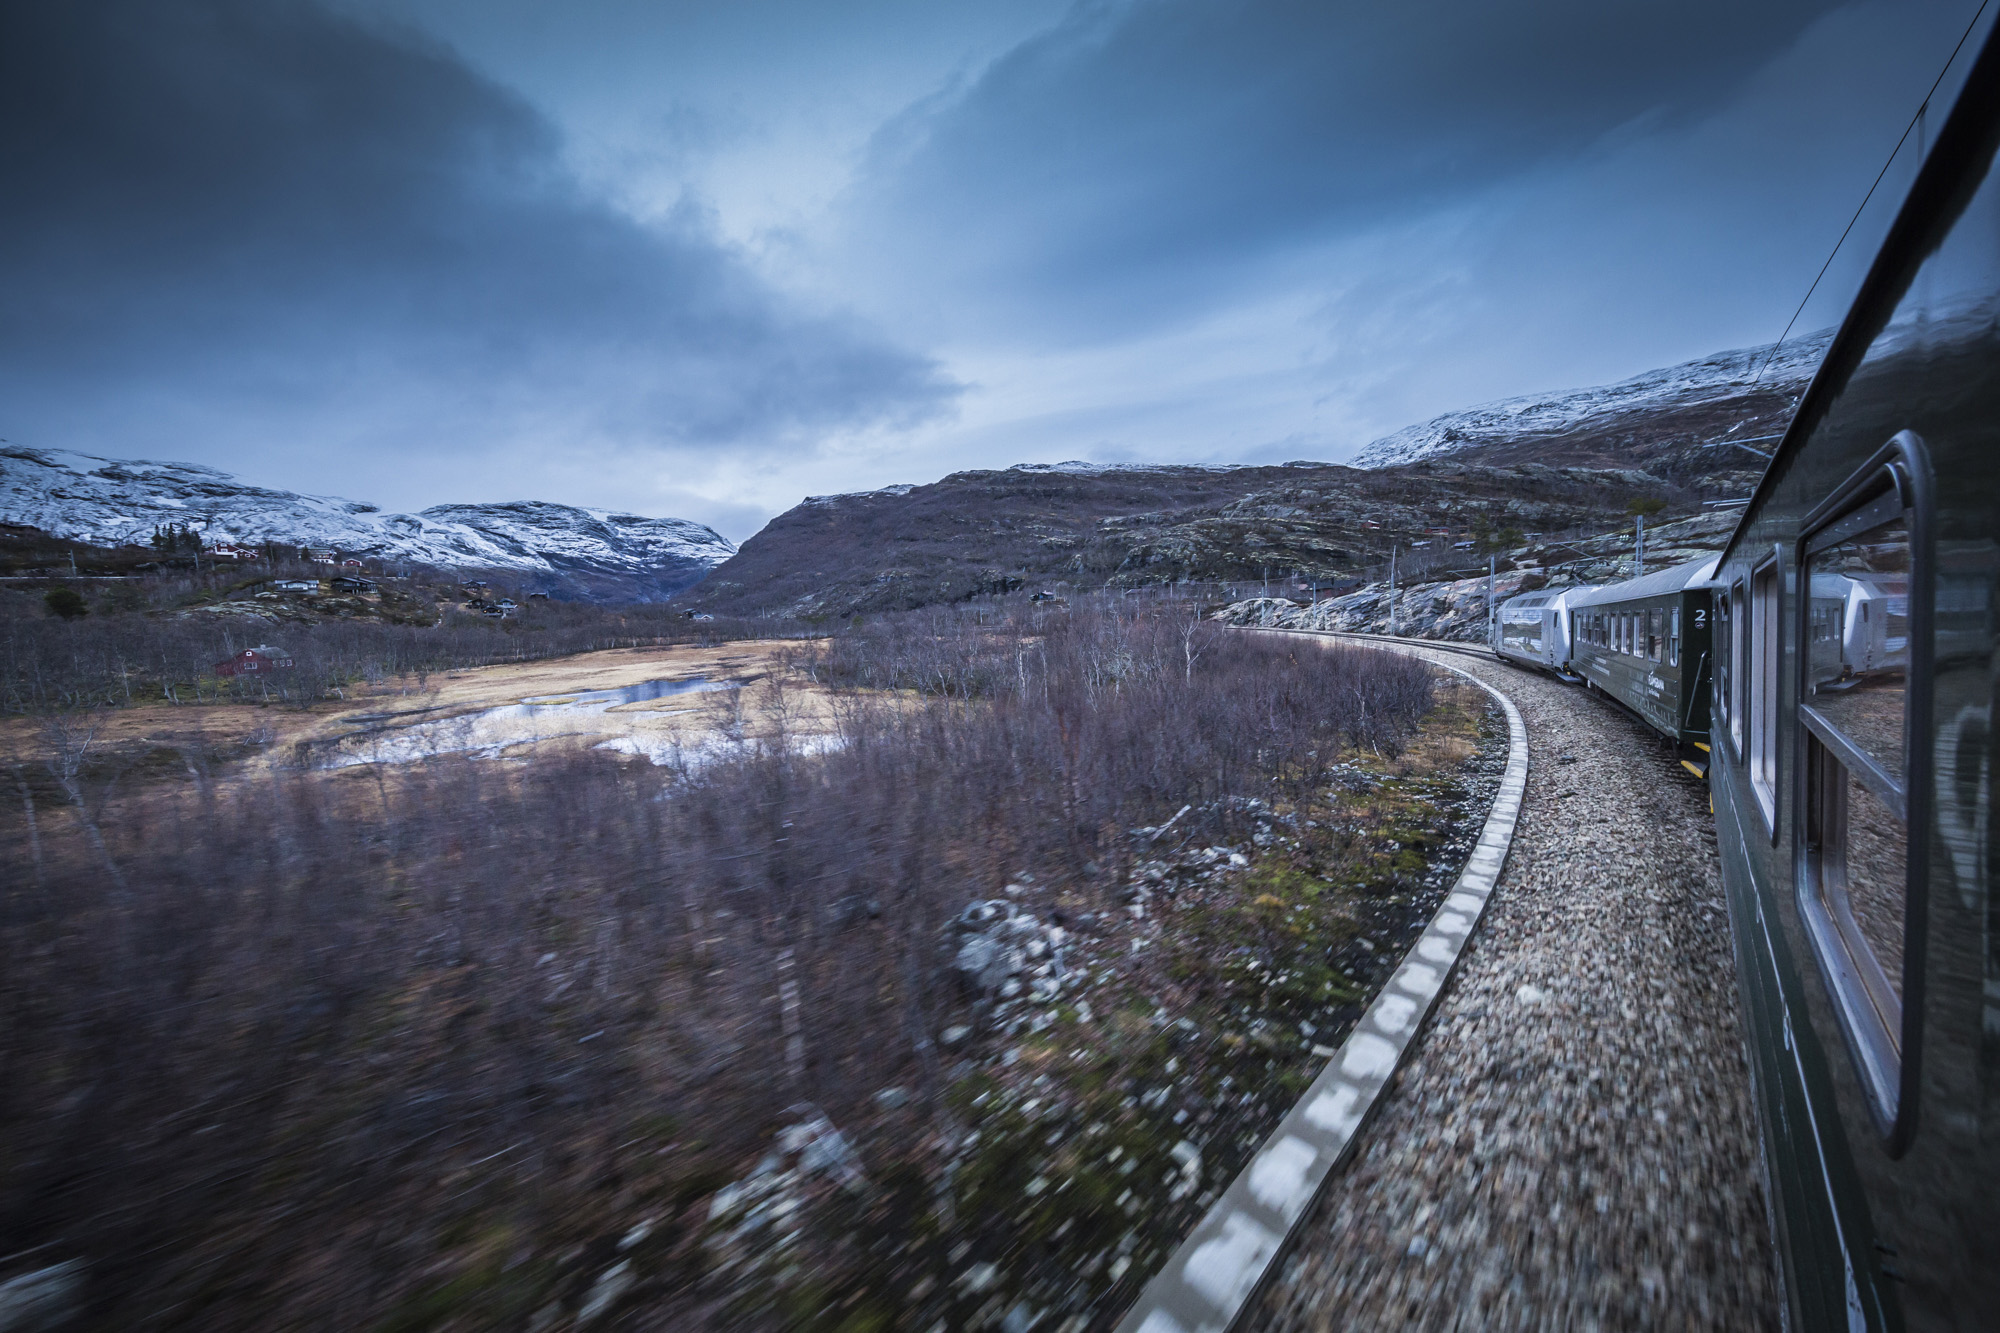 The Flåmsbana railway in Norway